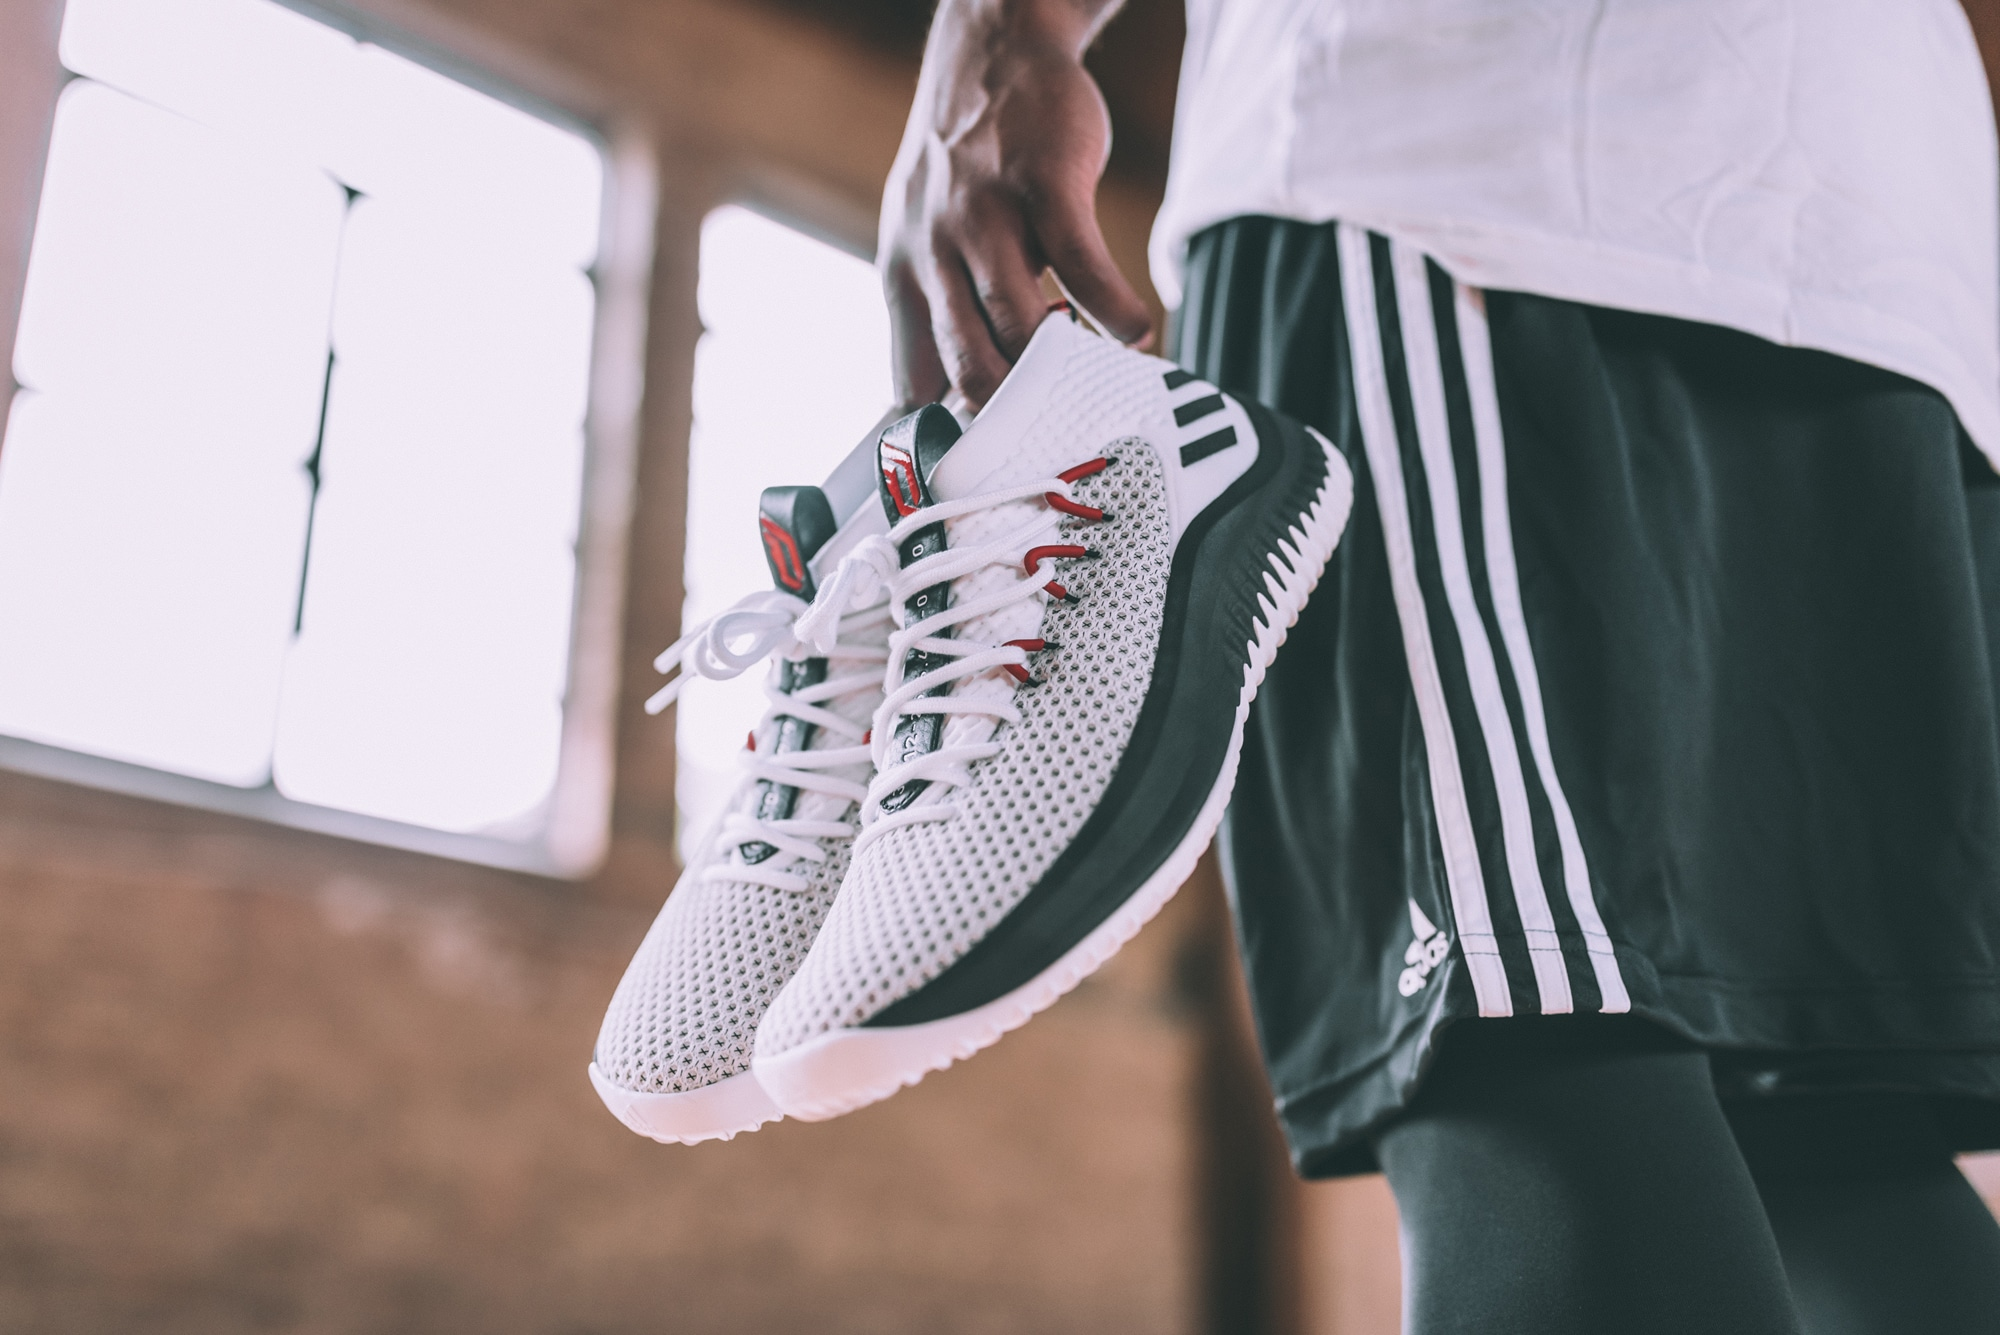 outlet store 35aba 46c83 But luckily for you and your feet, that has changed, as adidas is releasing  Lillard s newest signature sneaker, the Dame 4, online on Oct. 4 and in  stores ...